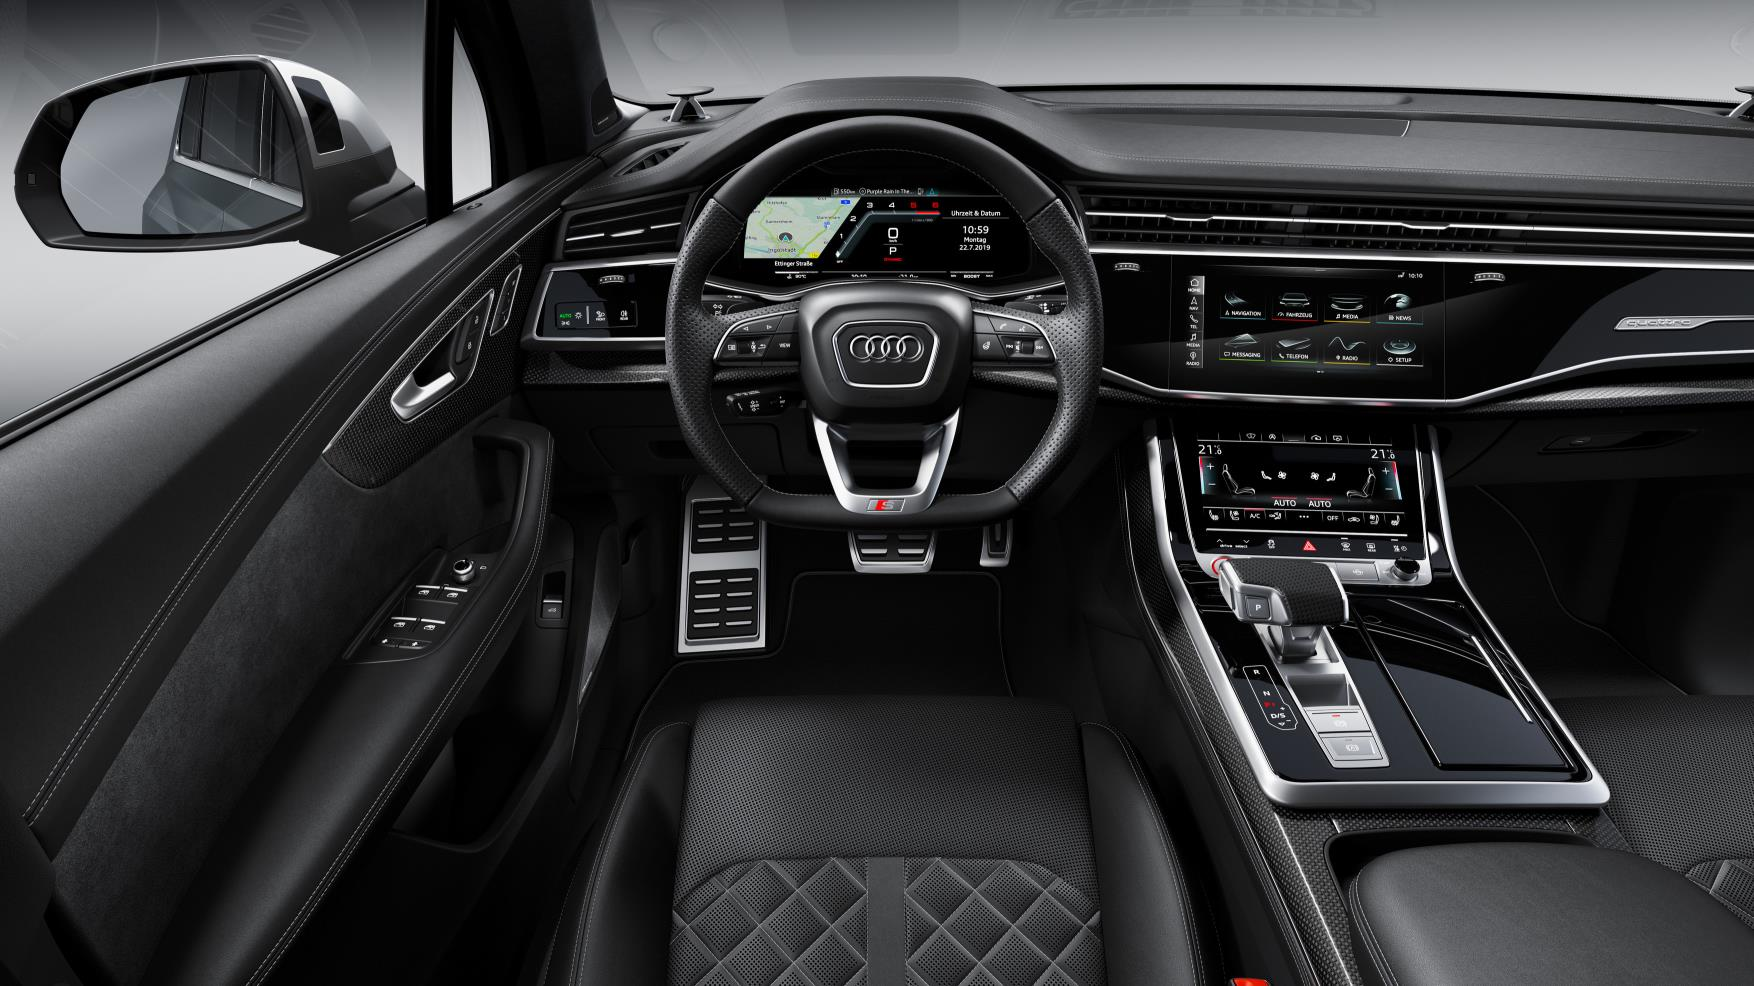 The SQ7 features a new twin-screen infotainment setup